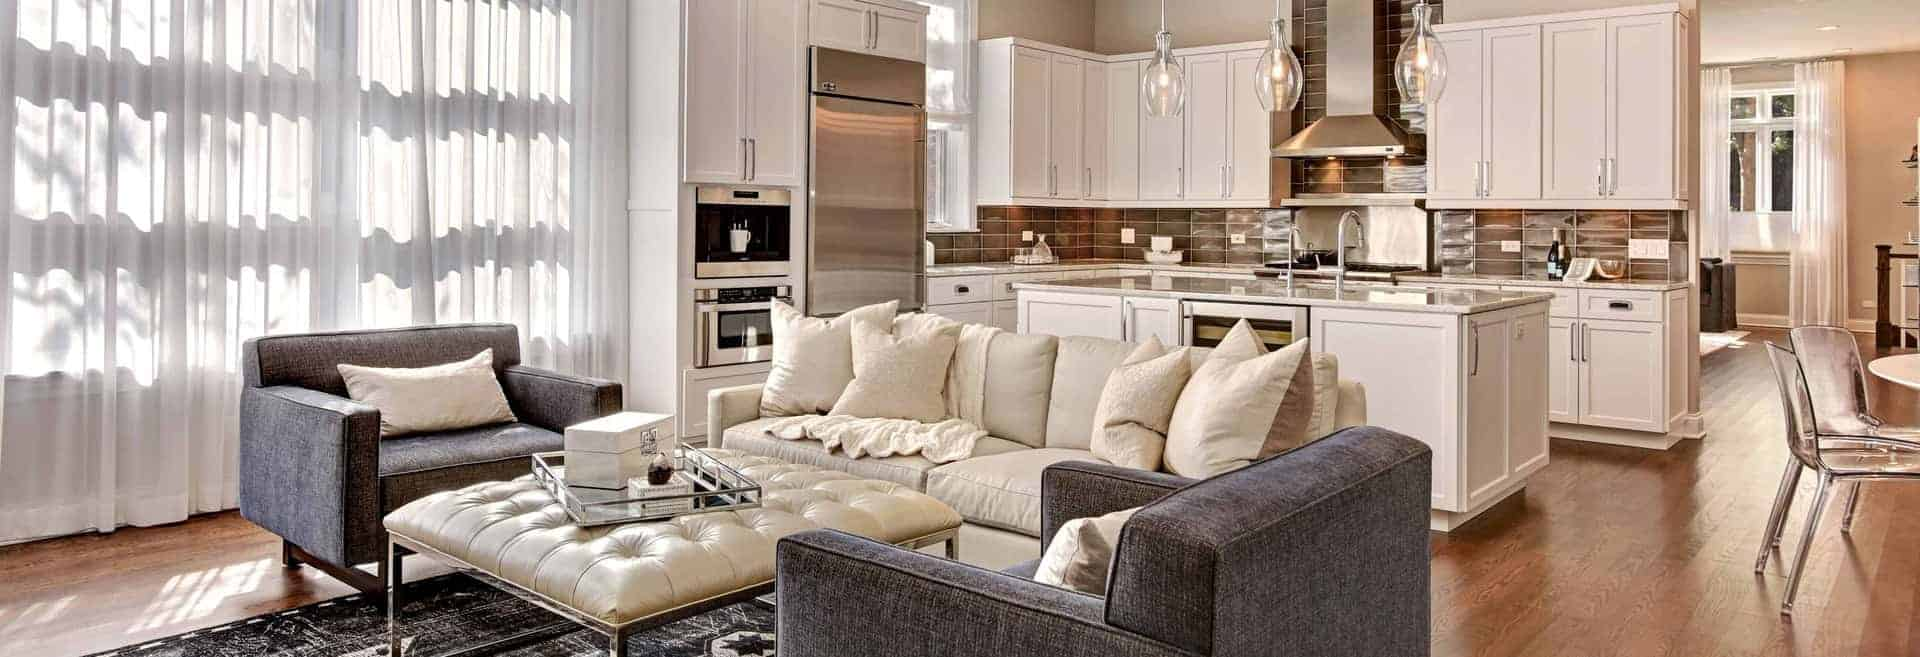 Convenient living room with white colors